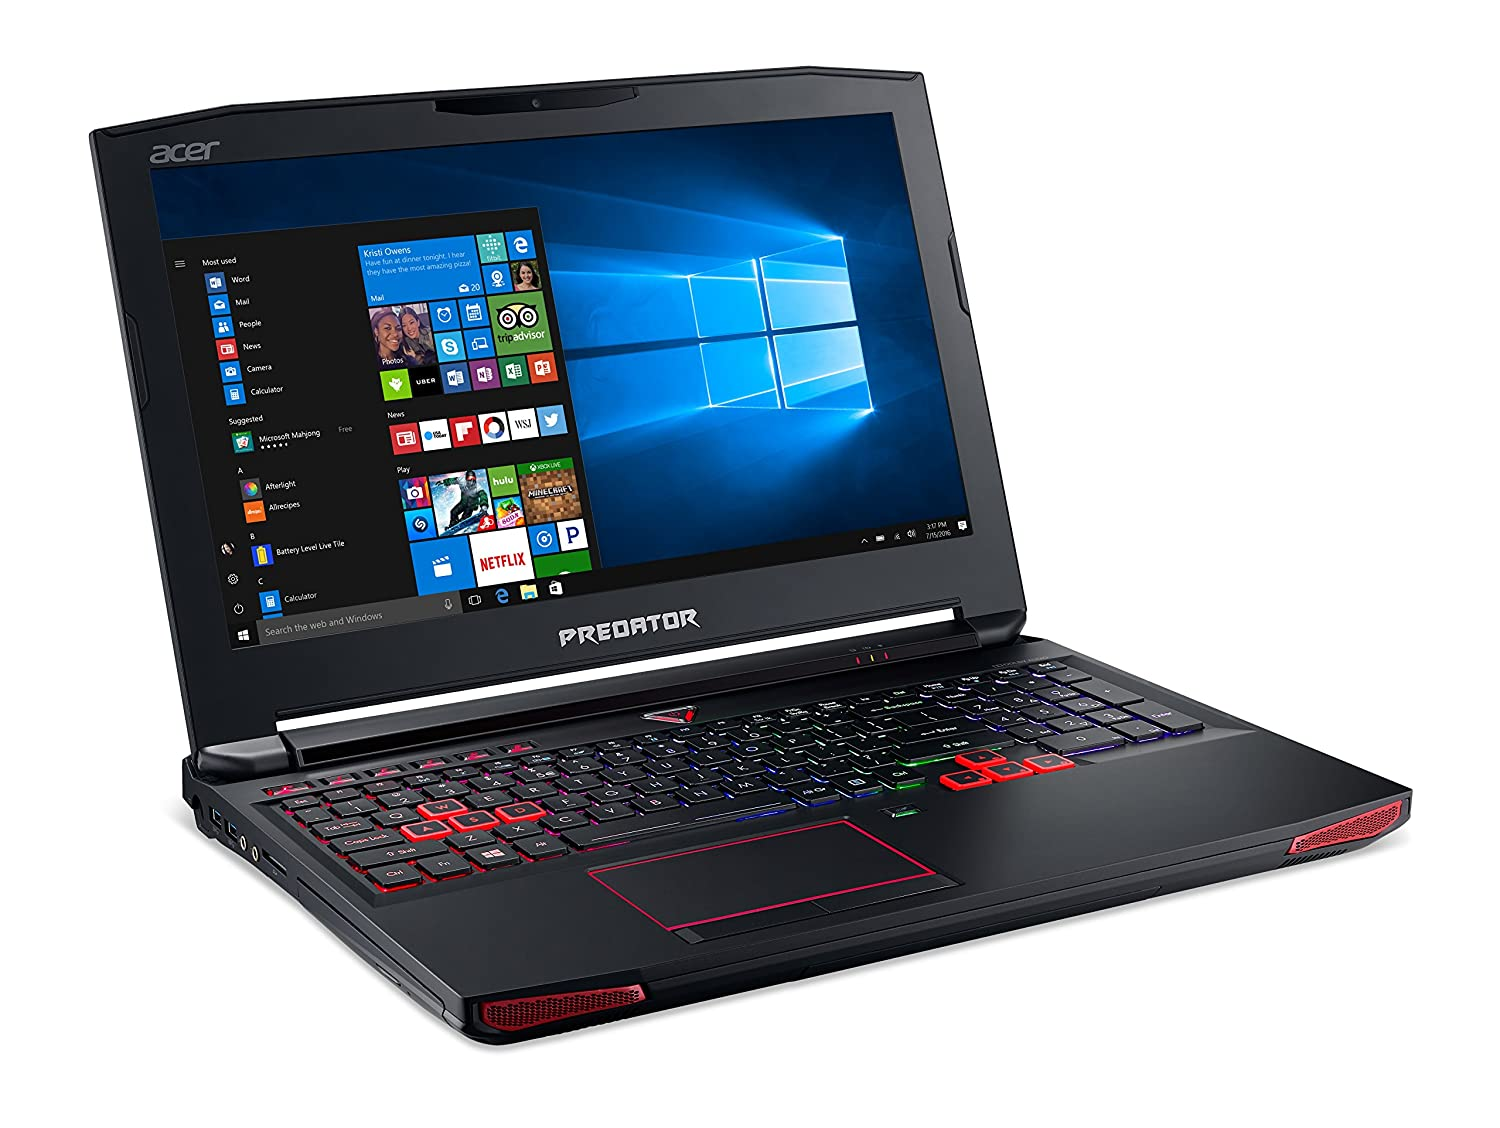 Acer Predator 15 Gaming Laptop Review